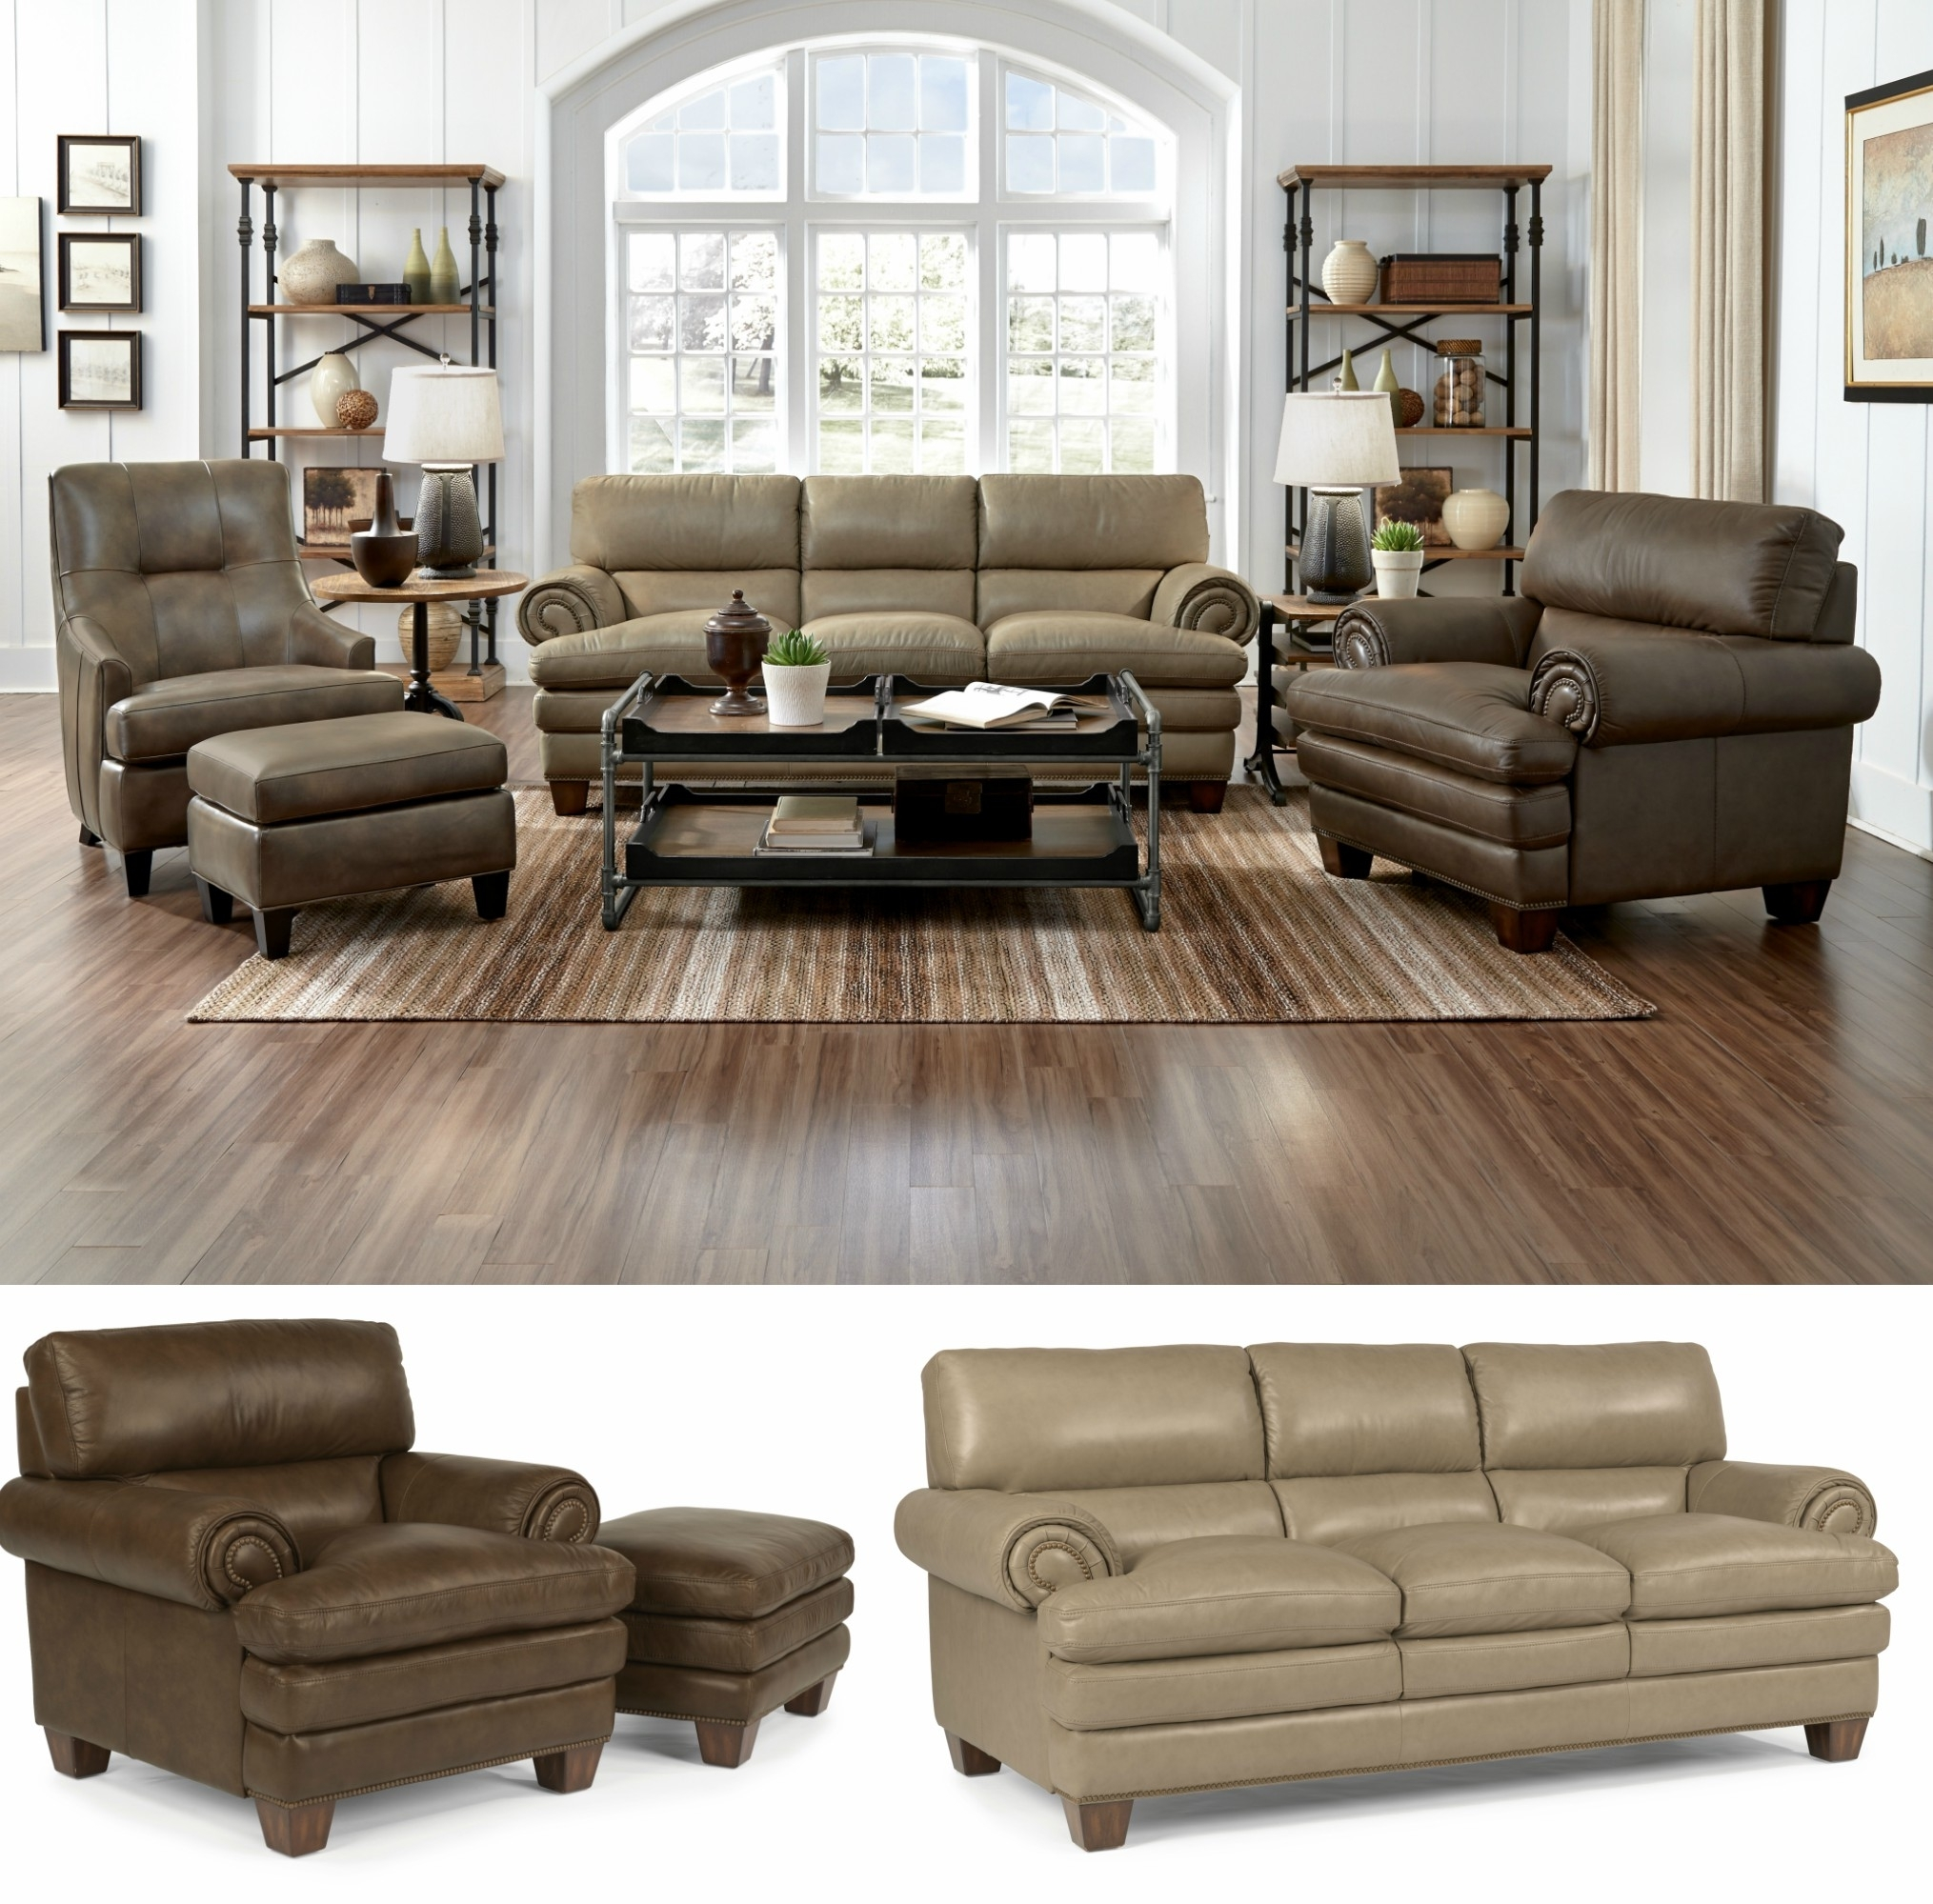 Cozy Overstuffed Leather Sofa Brown With Marvellous Decoration Camel With Camel Colored Sectional Sofas (View 10 of 10)